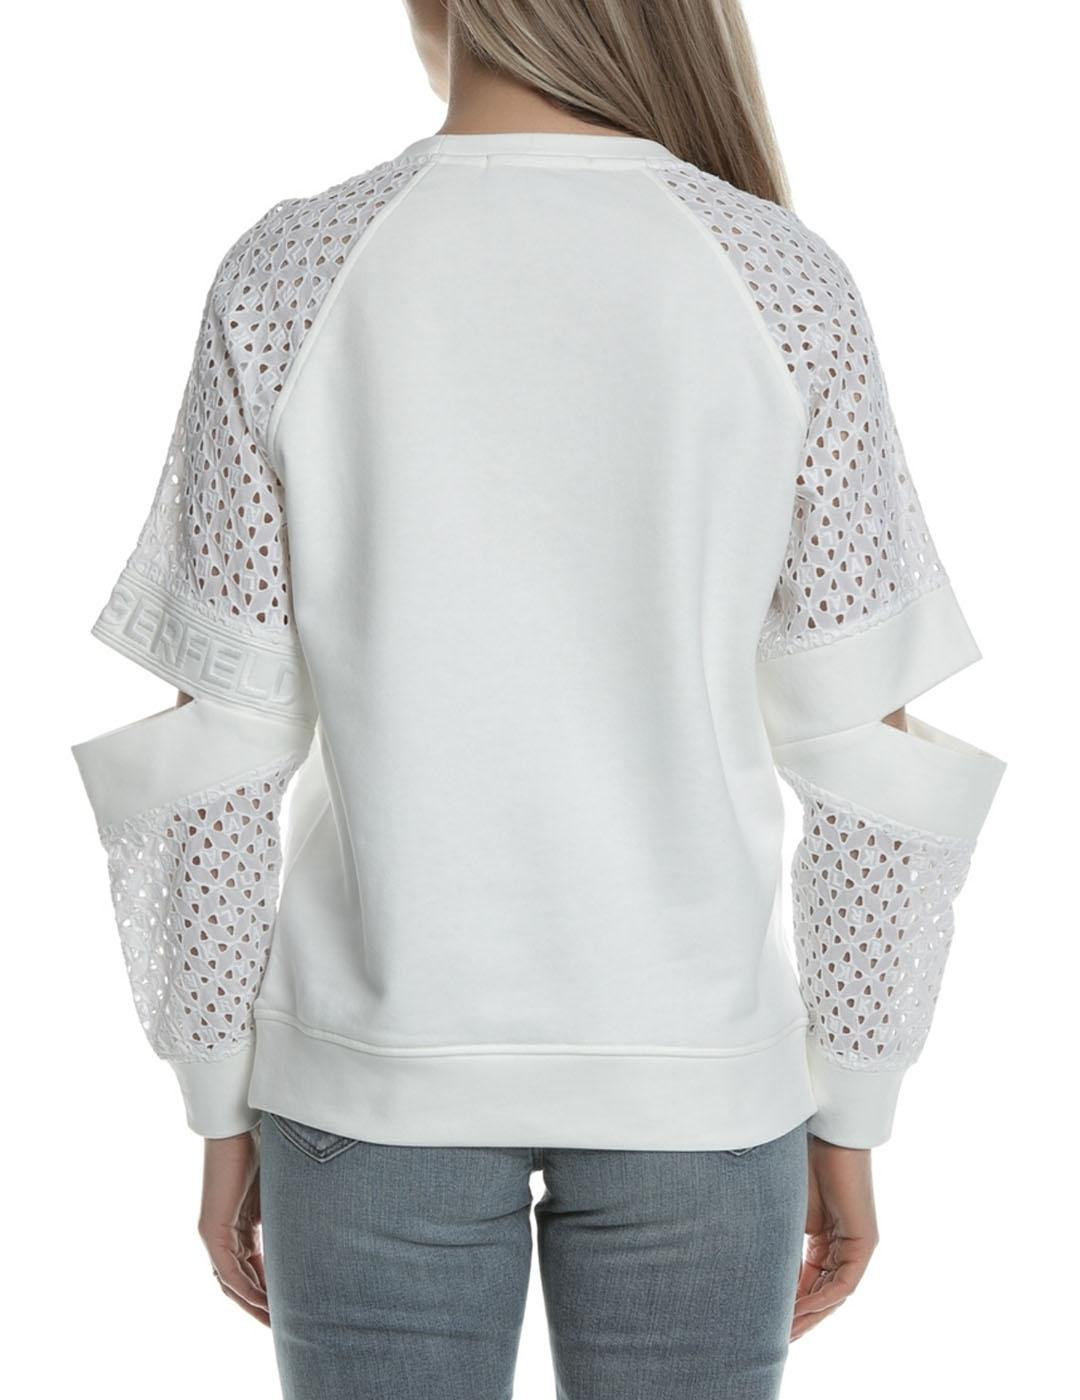 Sudadera Karl Lagerfeld blanca Cut Out Lace Sleeved Top